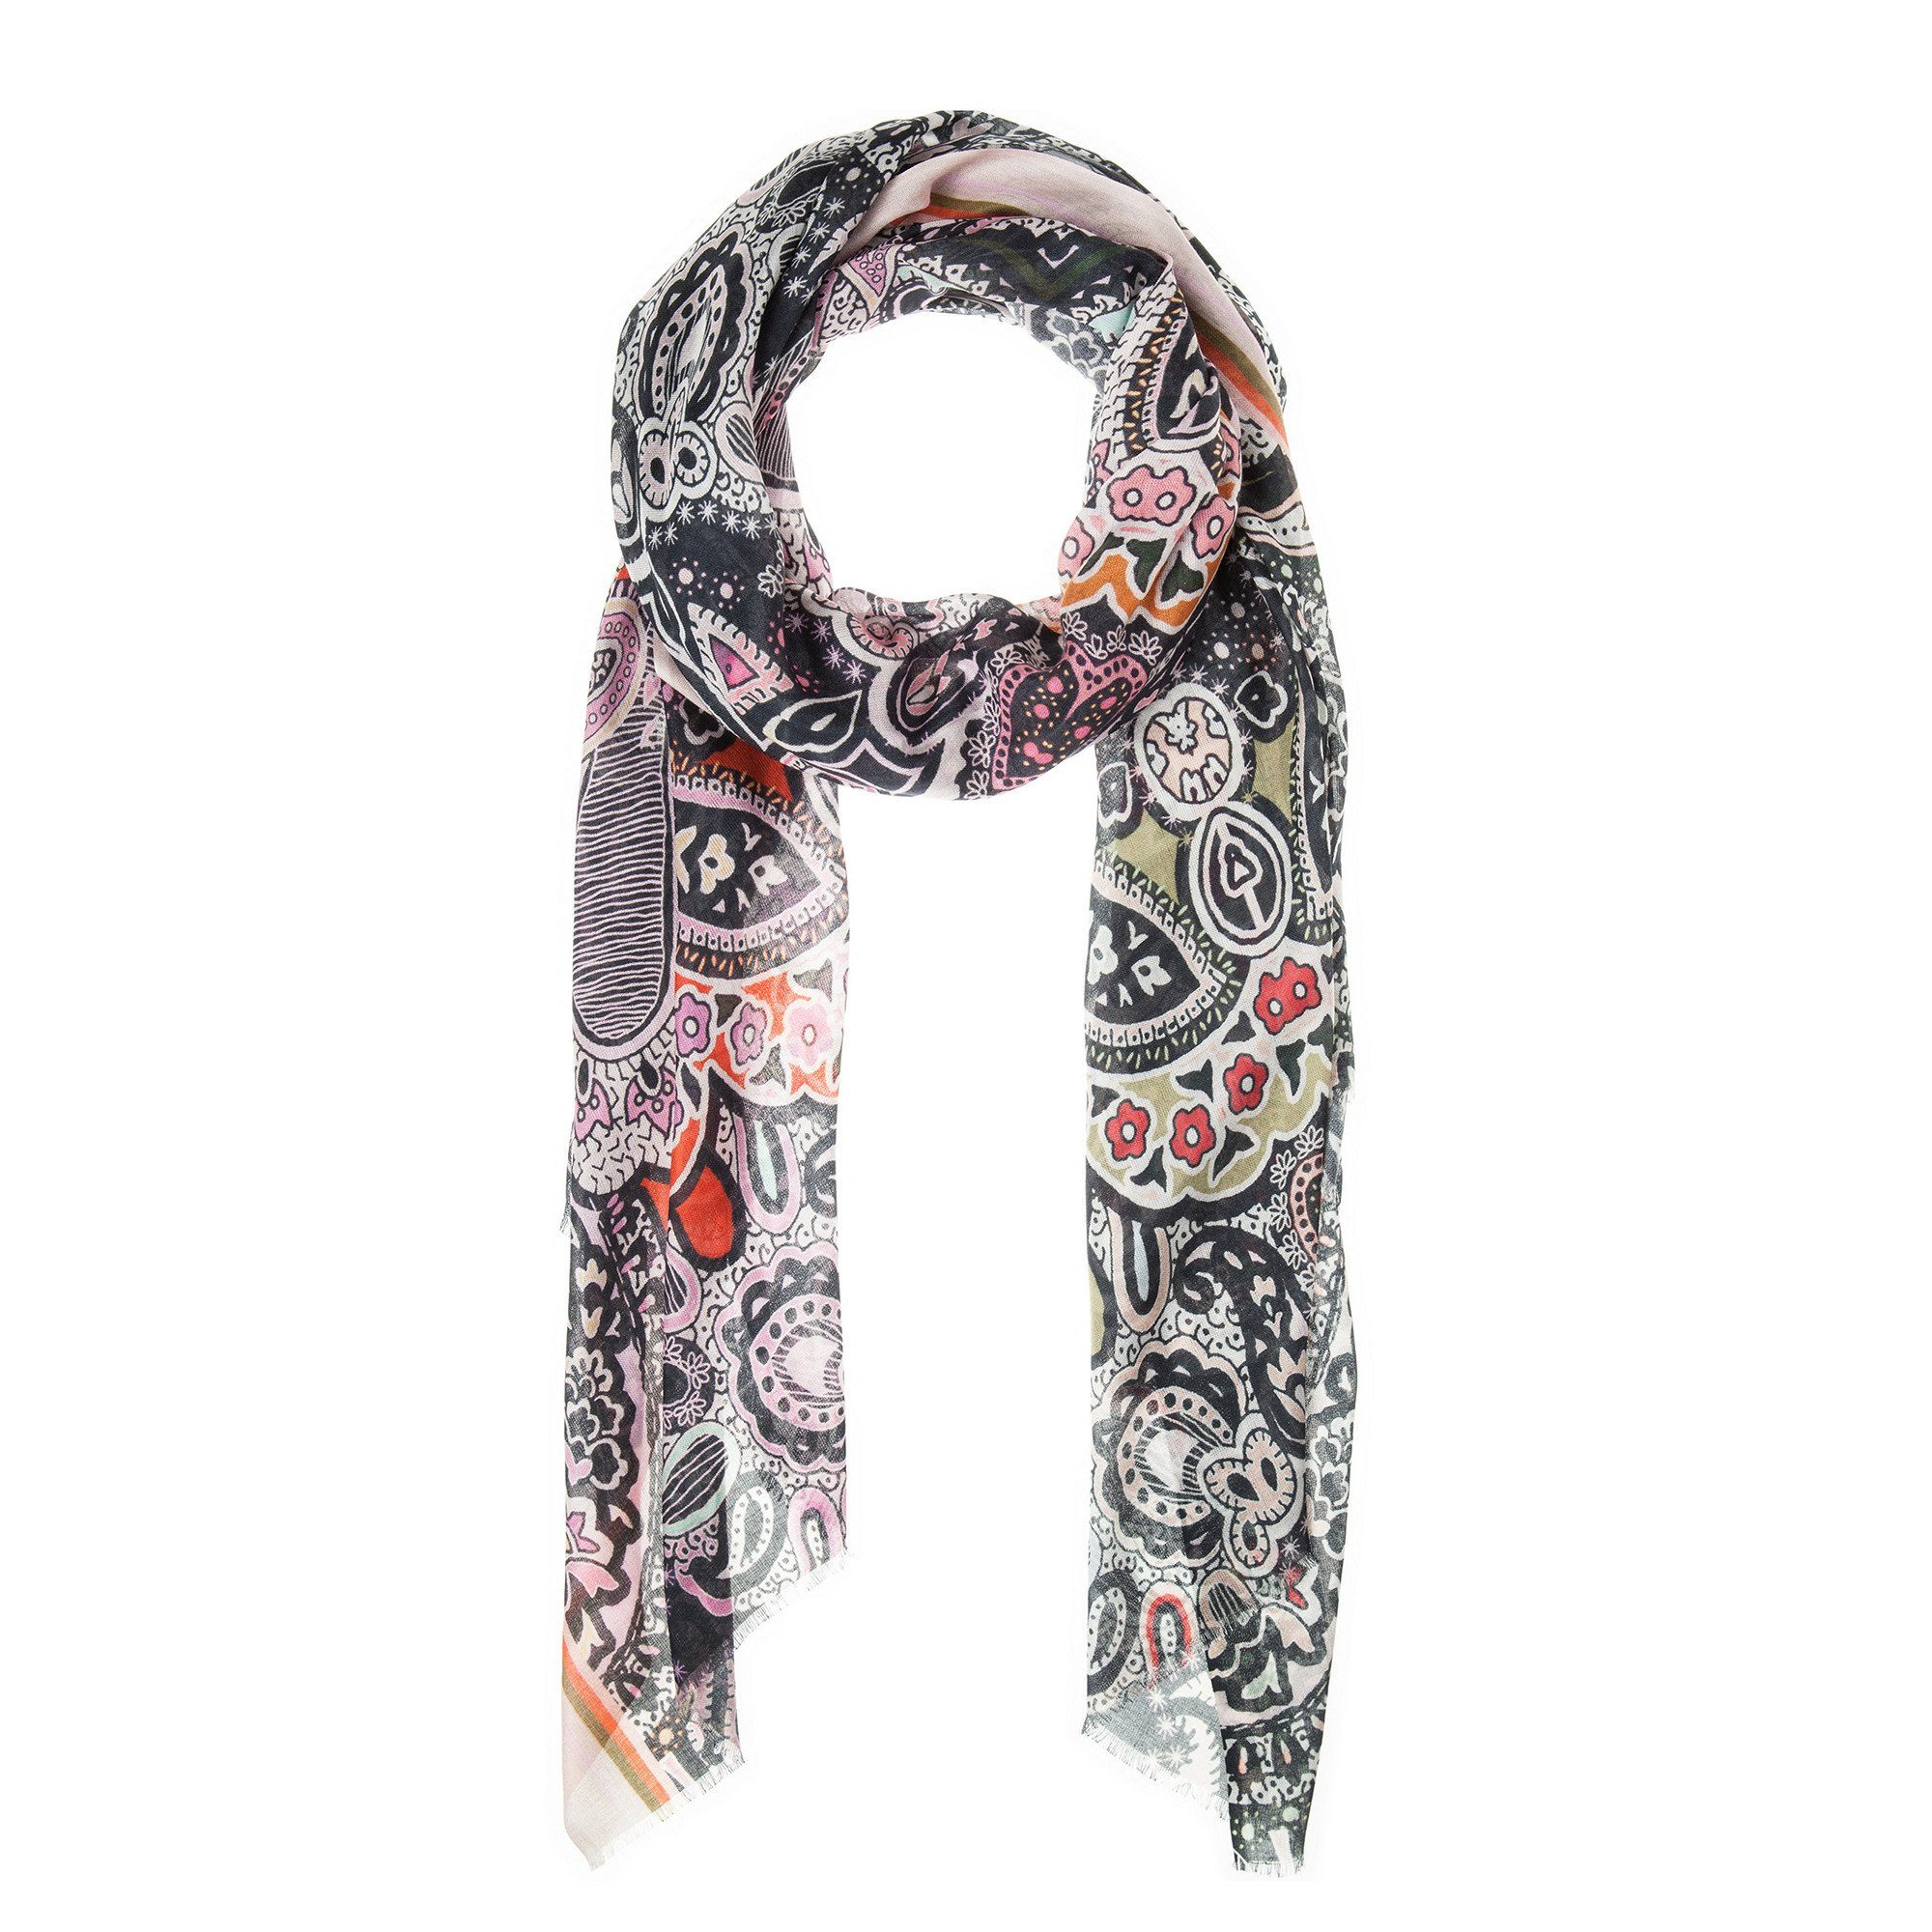 CODELLO Schal mit Paisley-Muster